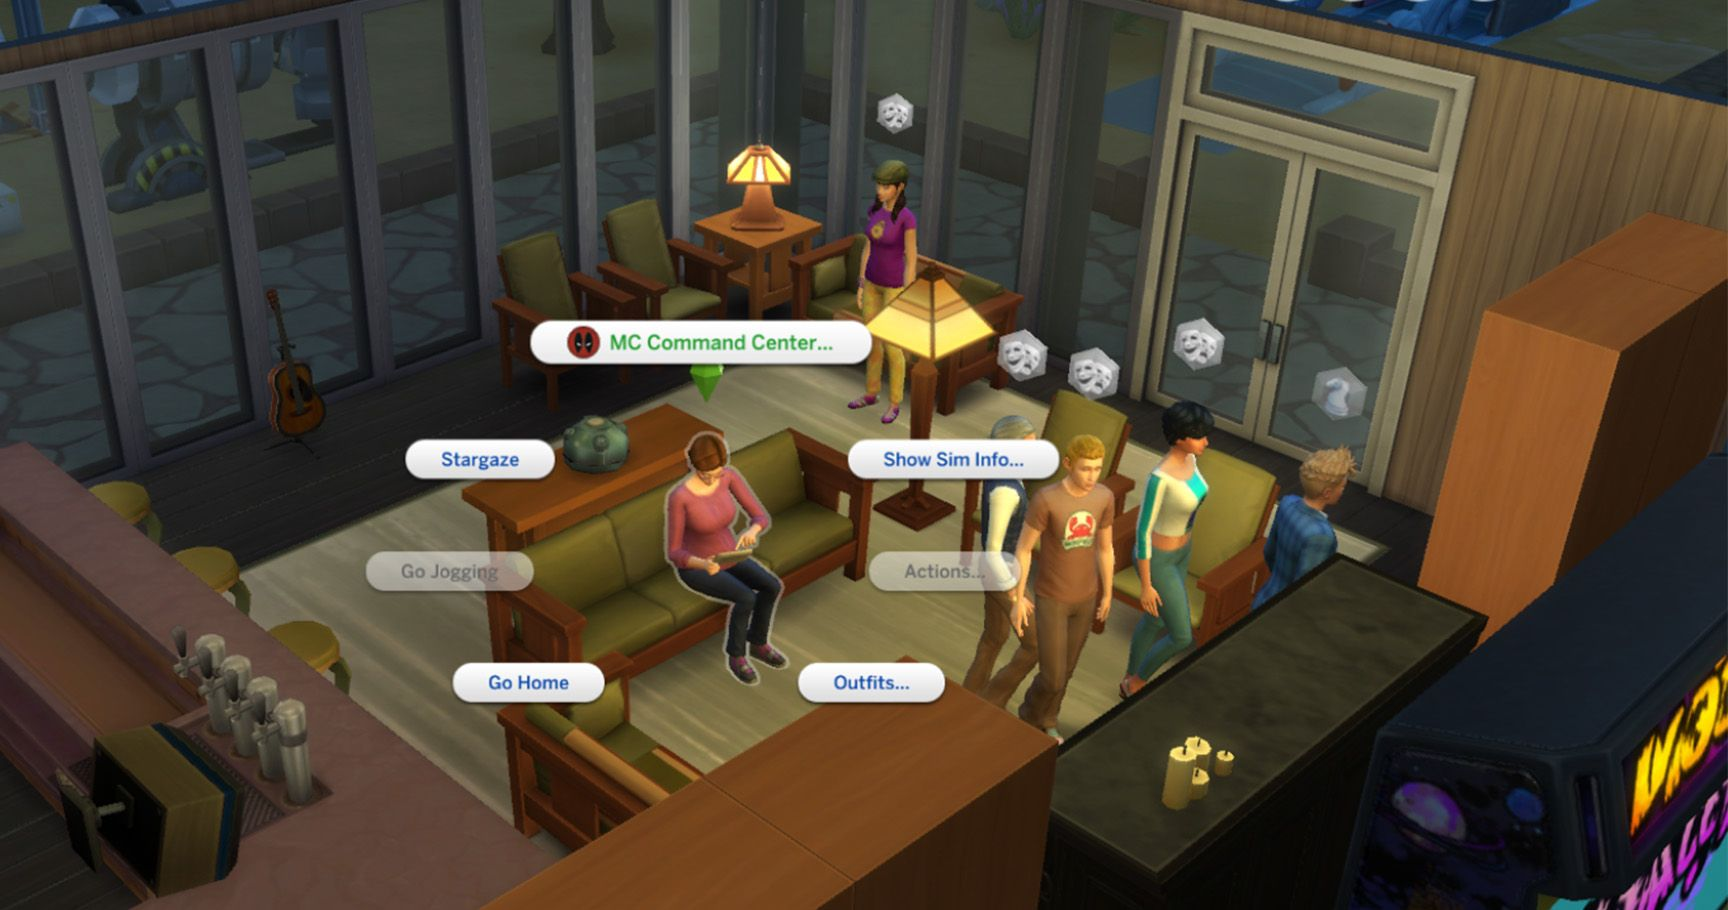 Sims 4 mod woohoo with anyone